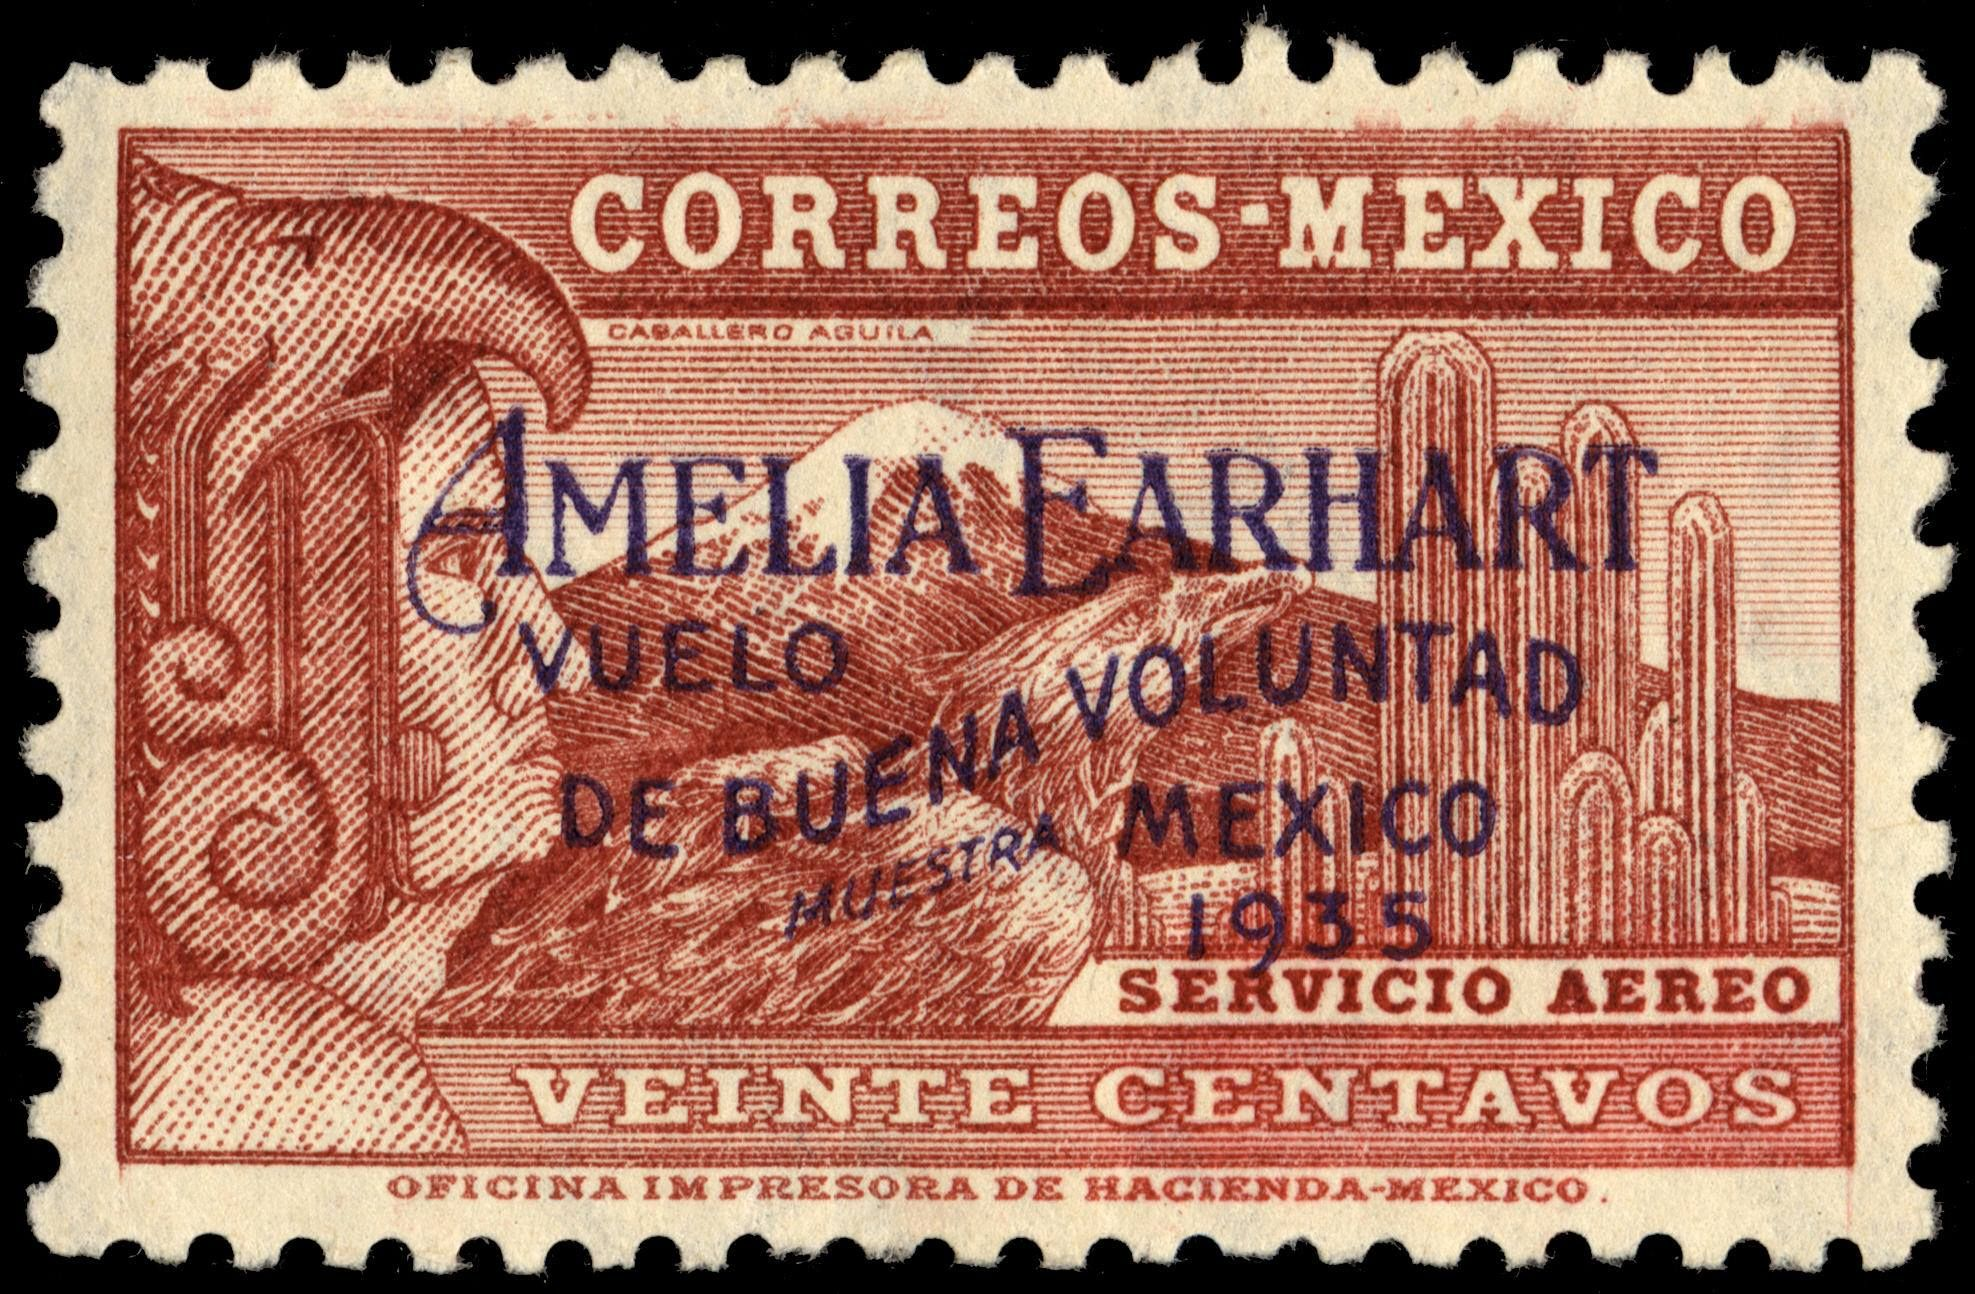 """1935 Amelia Earhart became the first woman to pilot a non-stop flight from Mexico City to Newark, New Jersey. """"Amelia Earhart Vuelo de Buena Voluntad, Mexico, 1935"""" (""""Amelia Earhart Flight of Good Will, Mexico, 1935"""""""